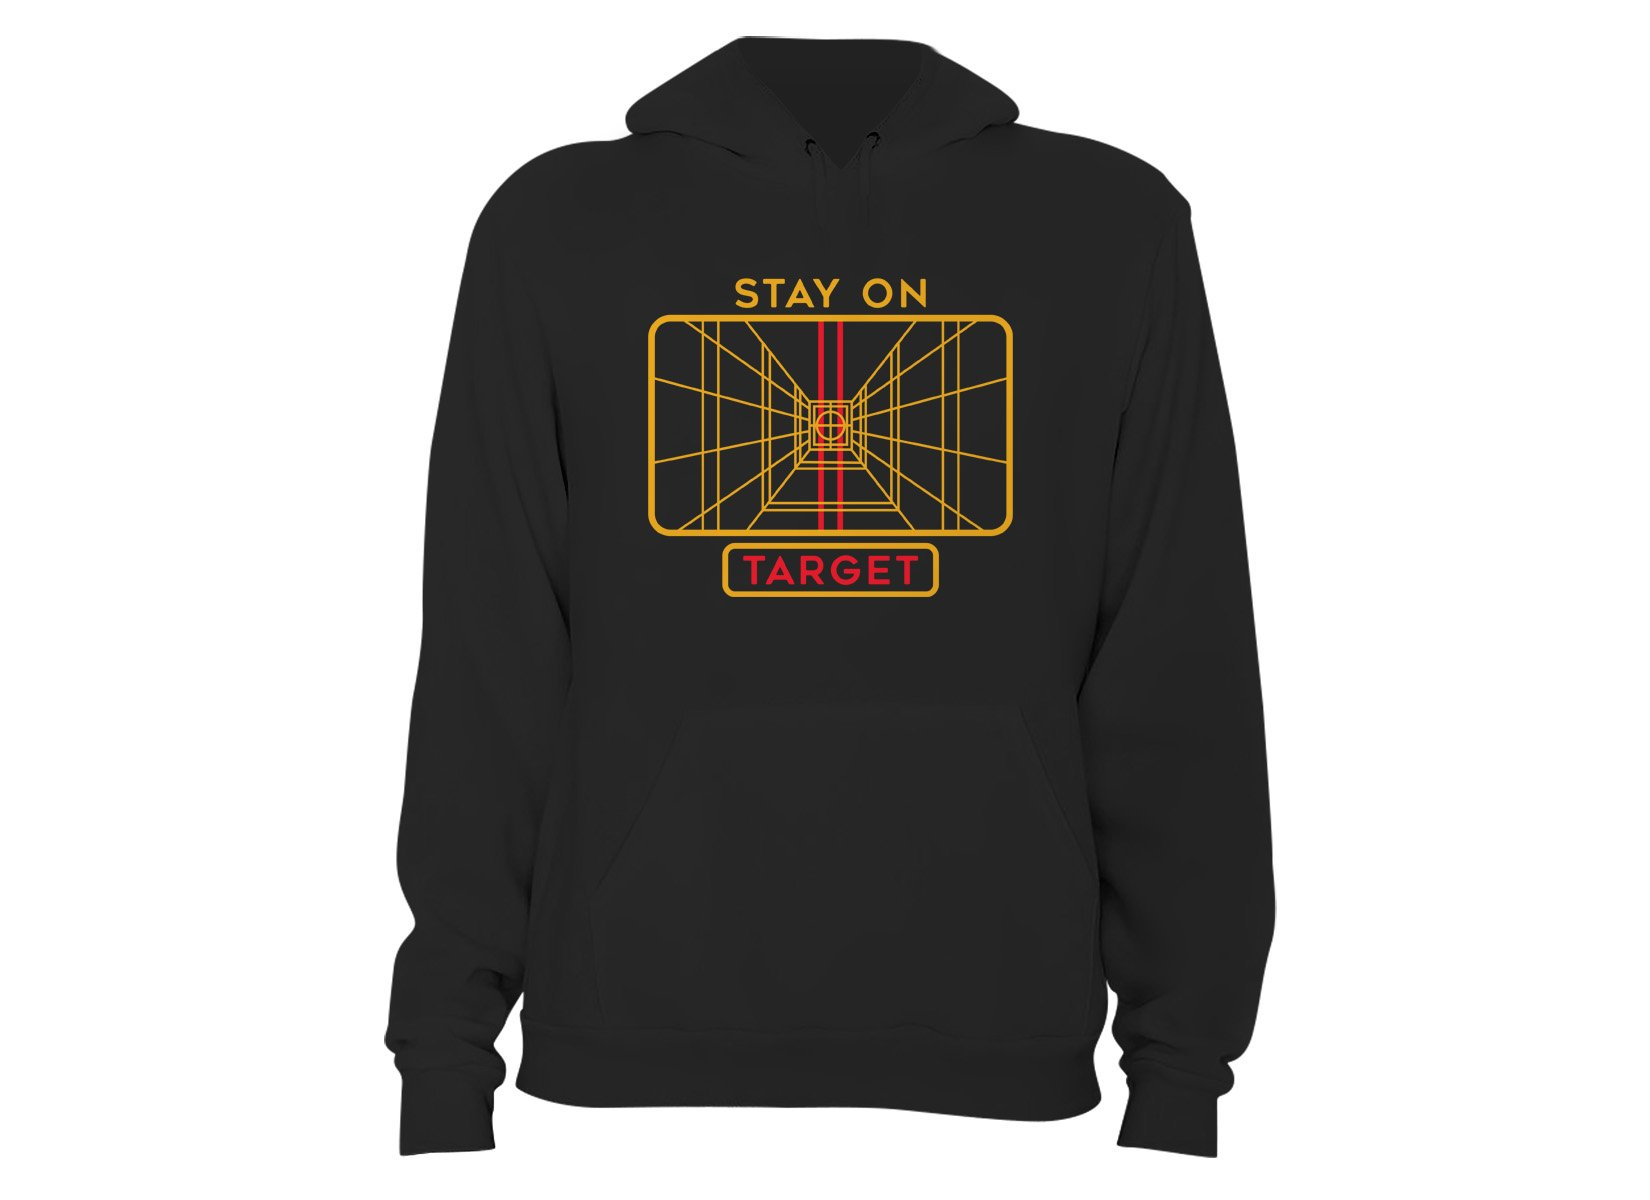 Stay On Target on Hoodie